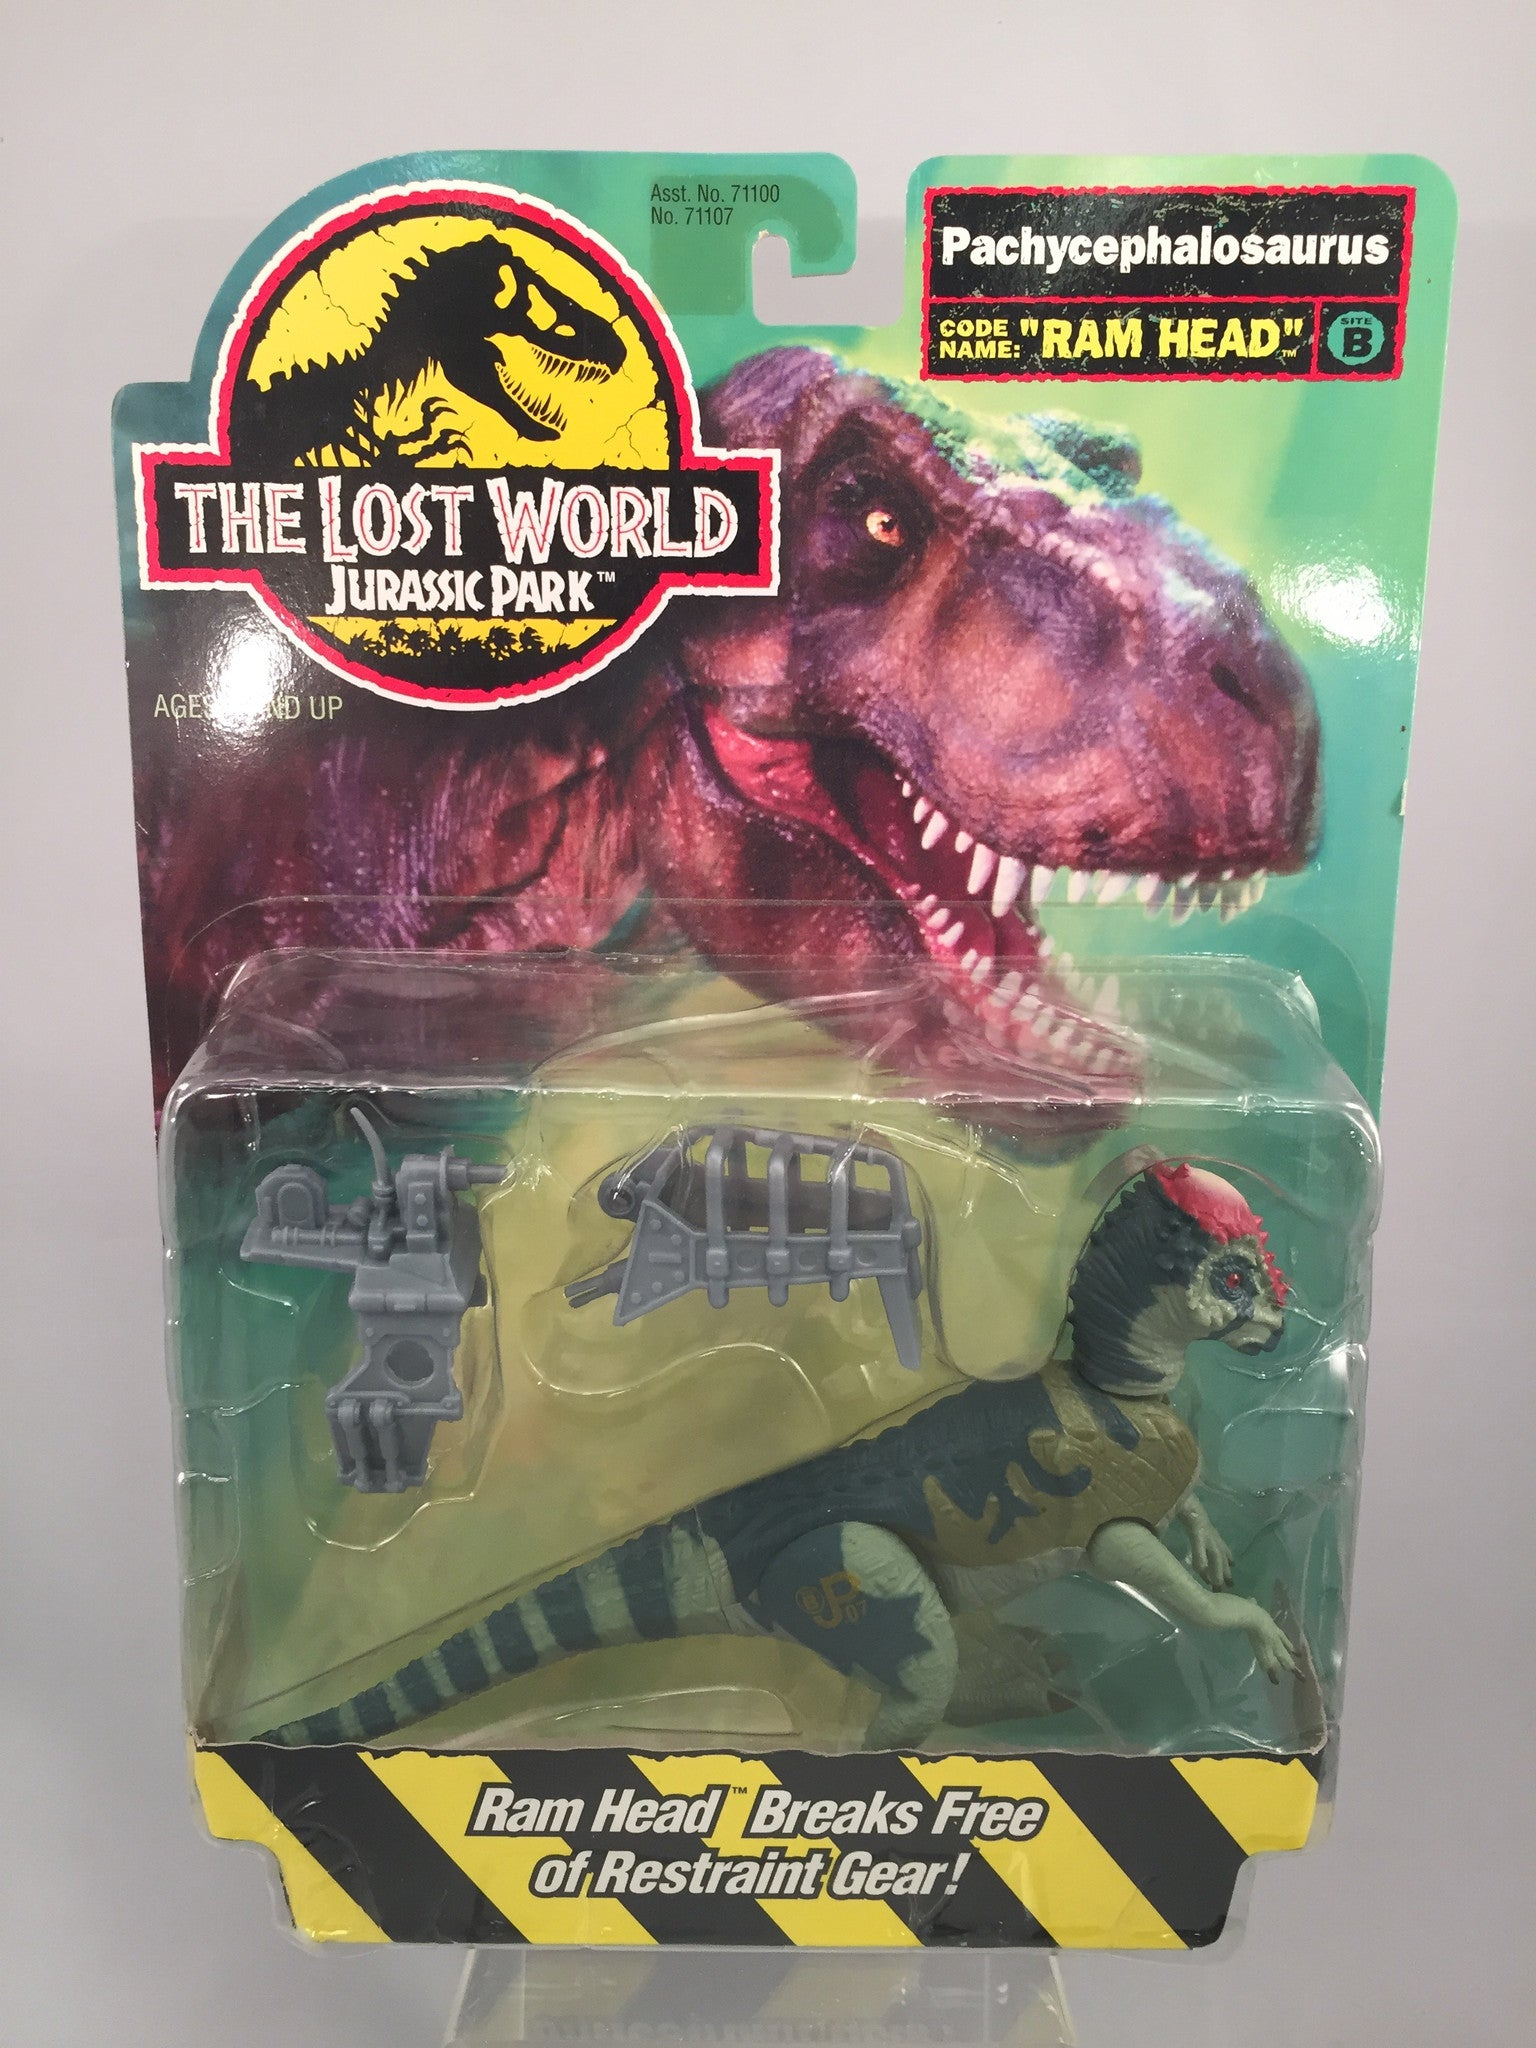 Jurassic Park The Lost World Pachycephalosaurus Ram Head Site B